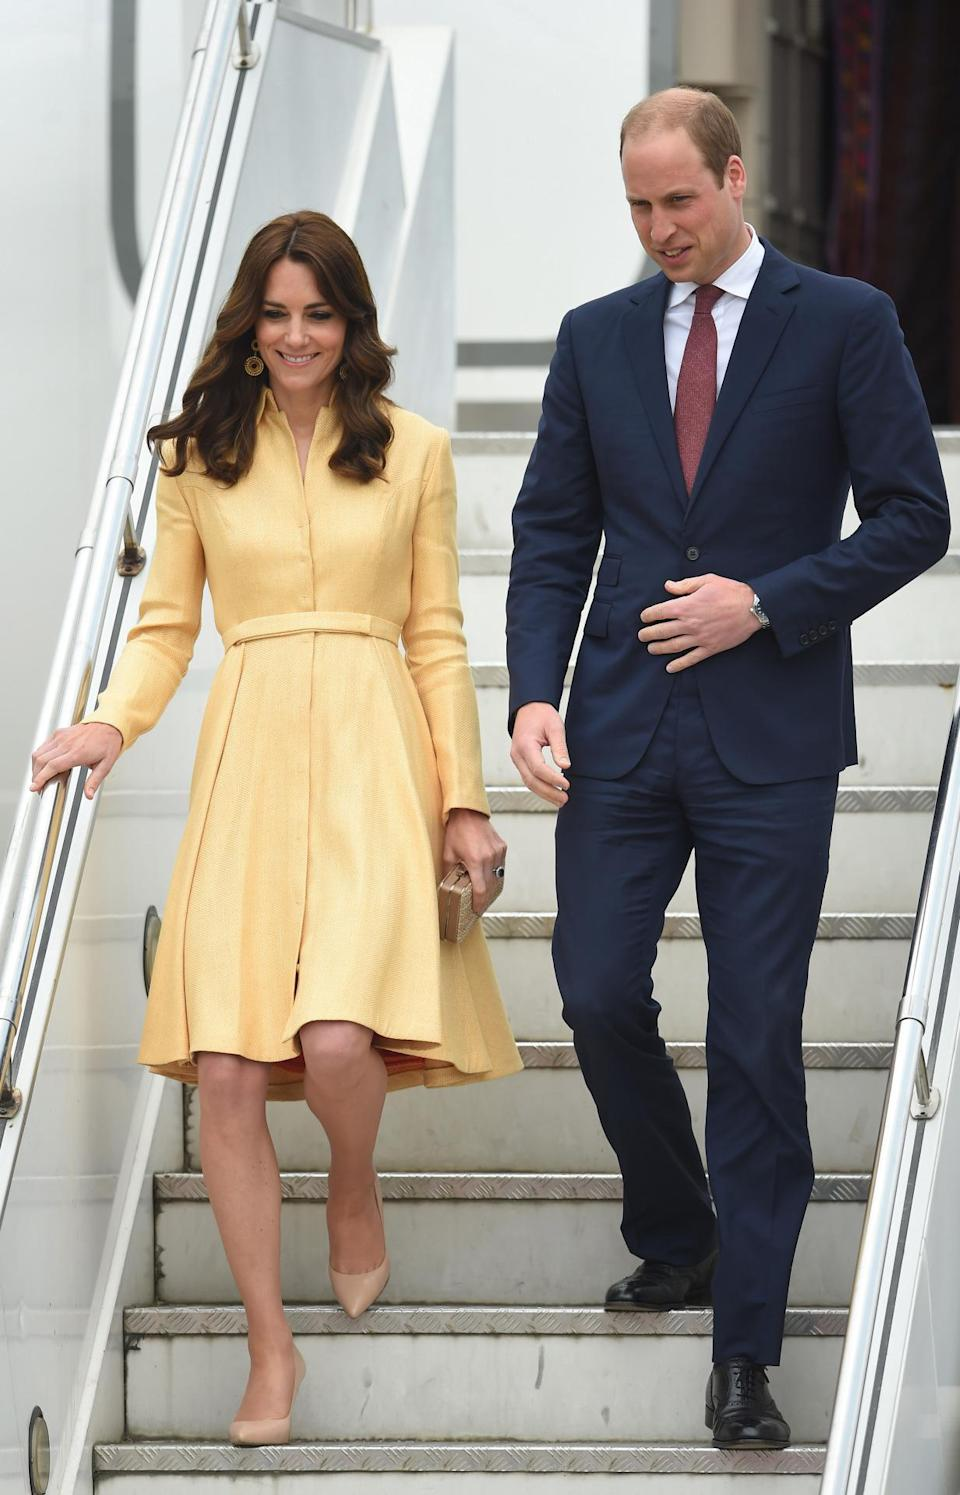 <p>For her arrival in Bhutan, Kate dressed in a yellow Emilia Wickstead coat dress accessorised with nude pumps and a matching clutch (again, both L.K. Bennett).</p><p><i>[Photo: PA]</i></p>